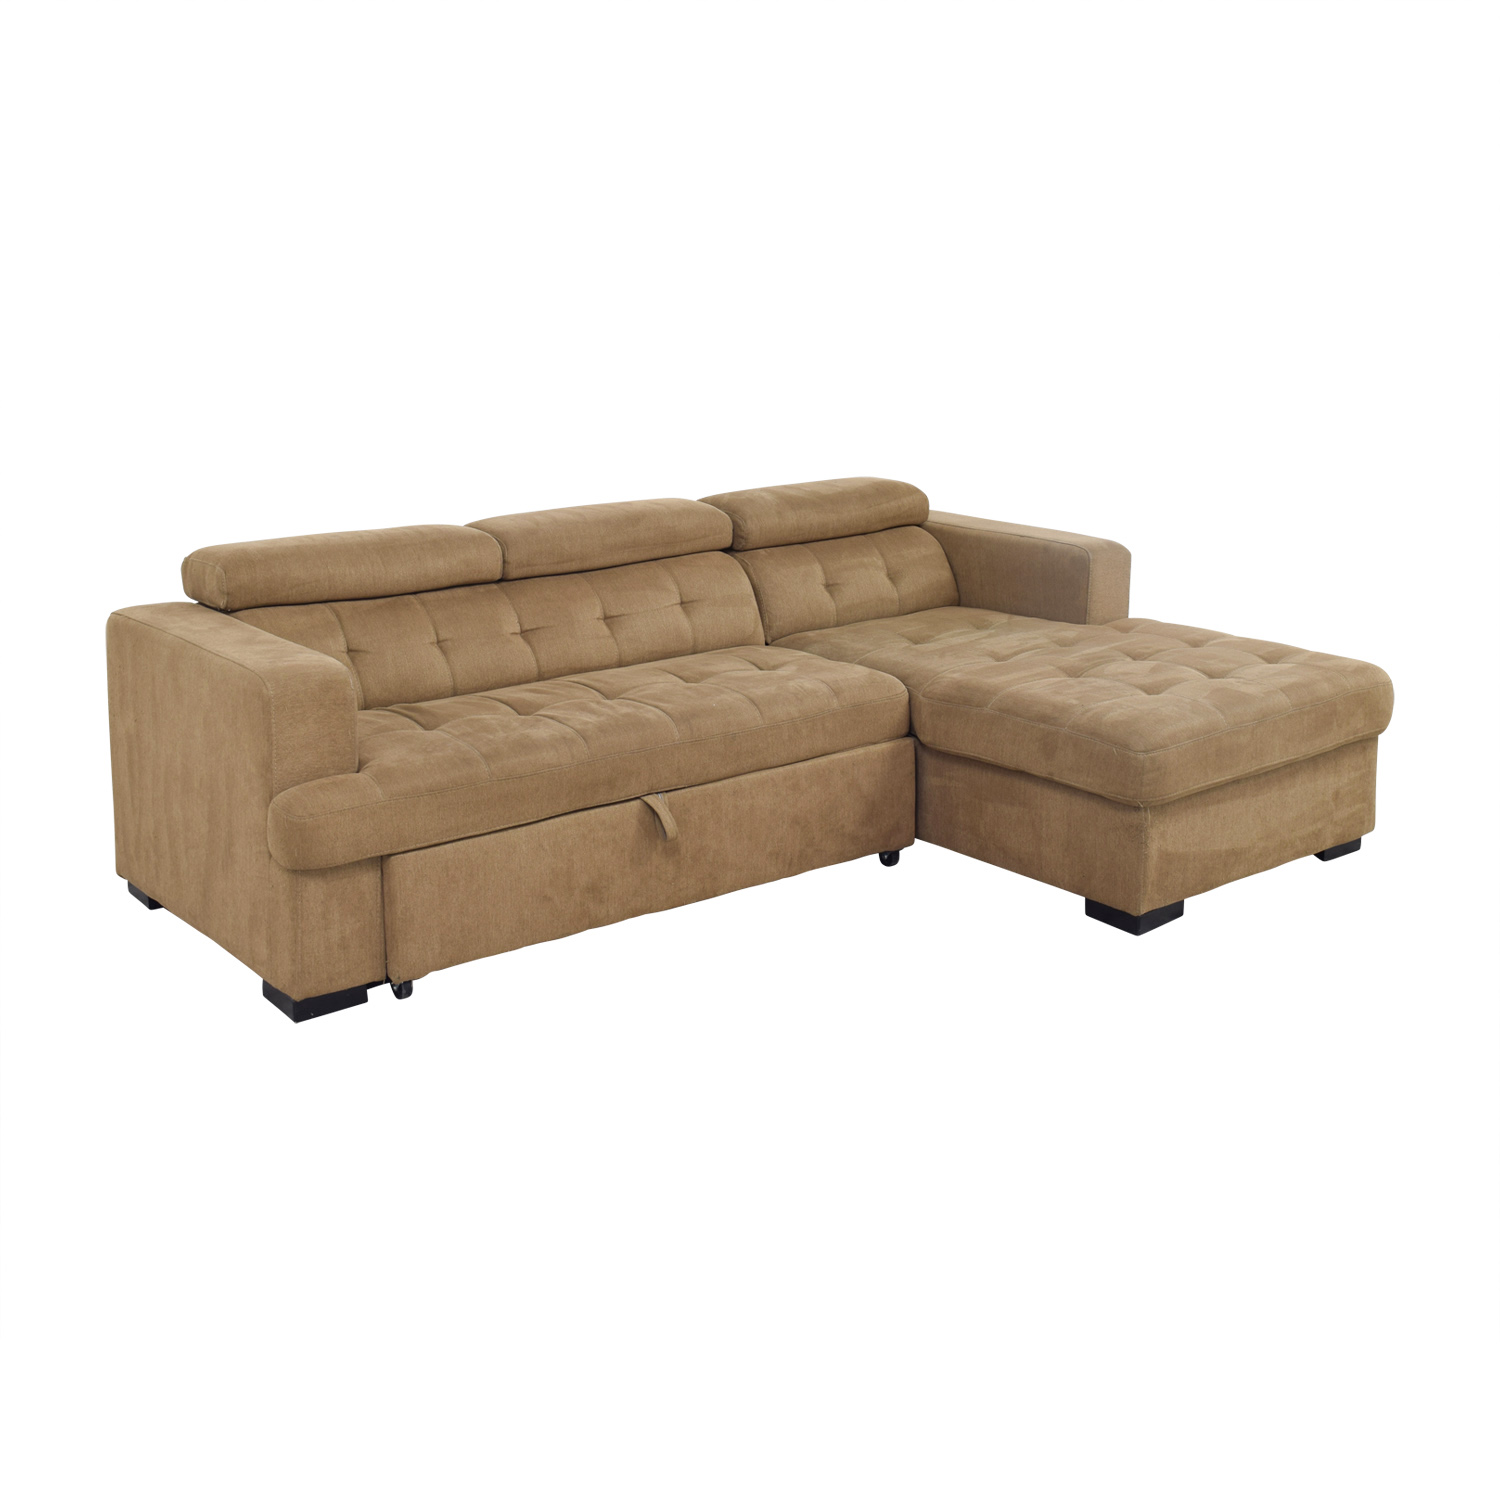 40 OFF  Bobs Furniture Bobs Furniture Brown Pull Out